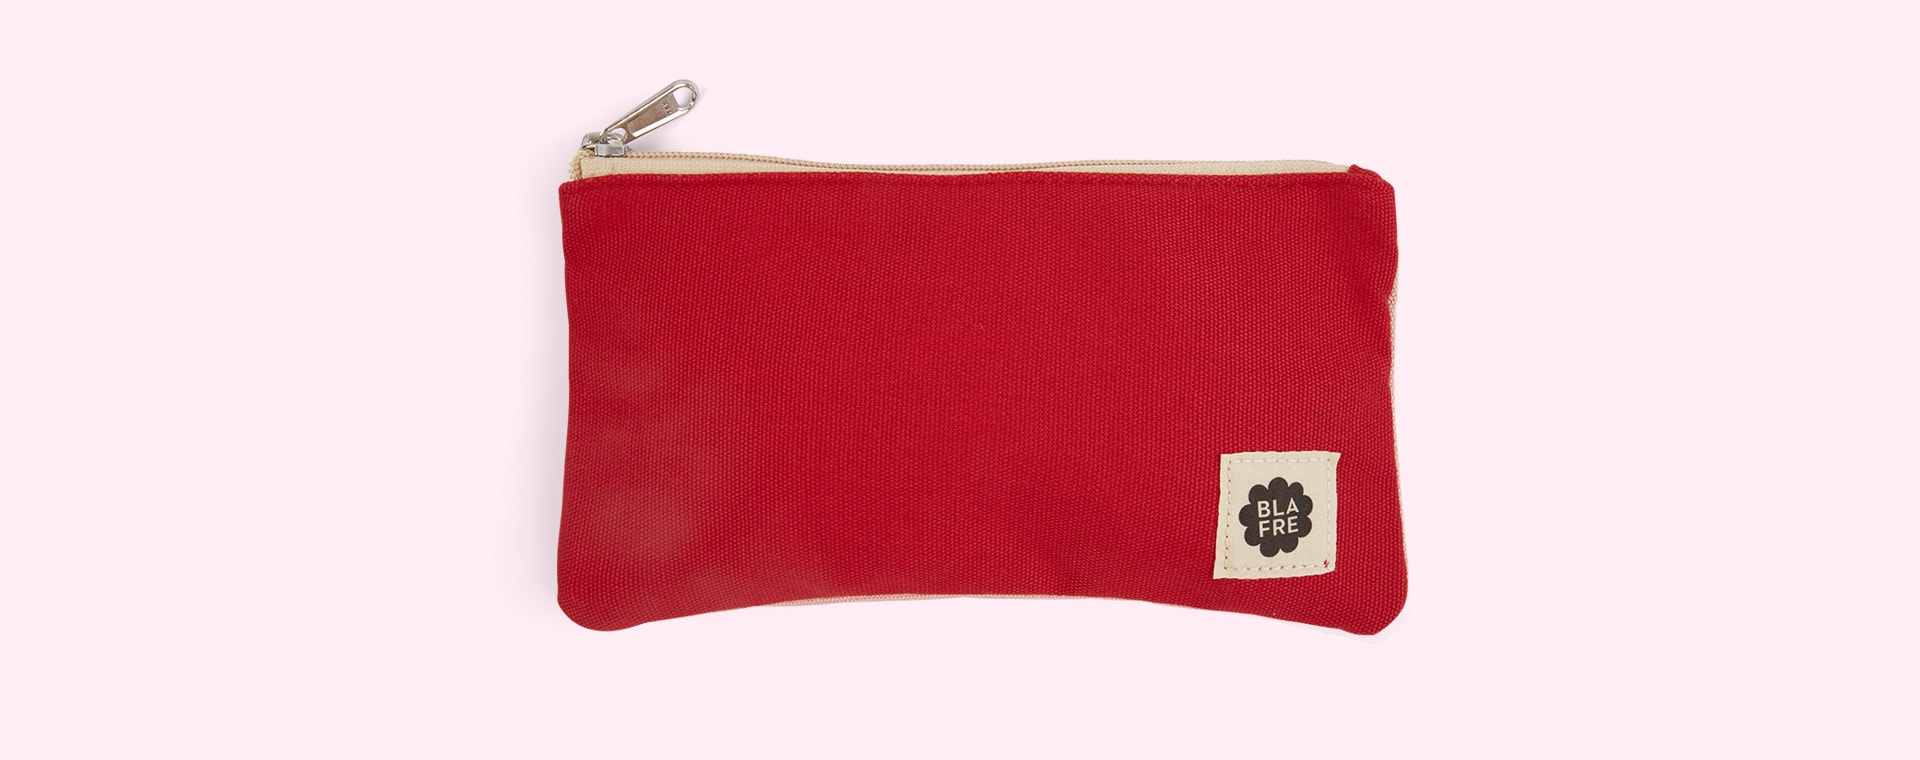 Red & Pink Blafre Pencil Case